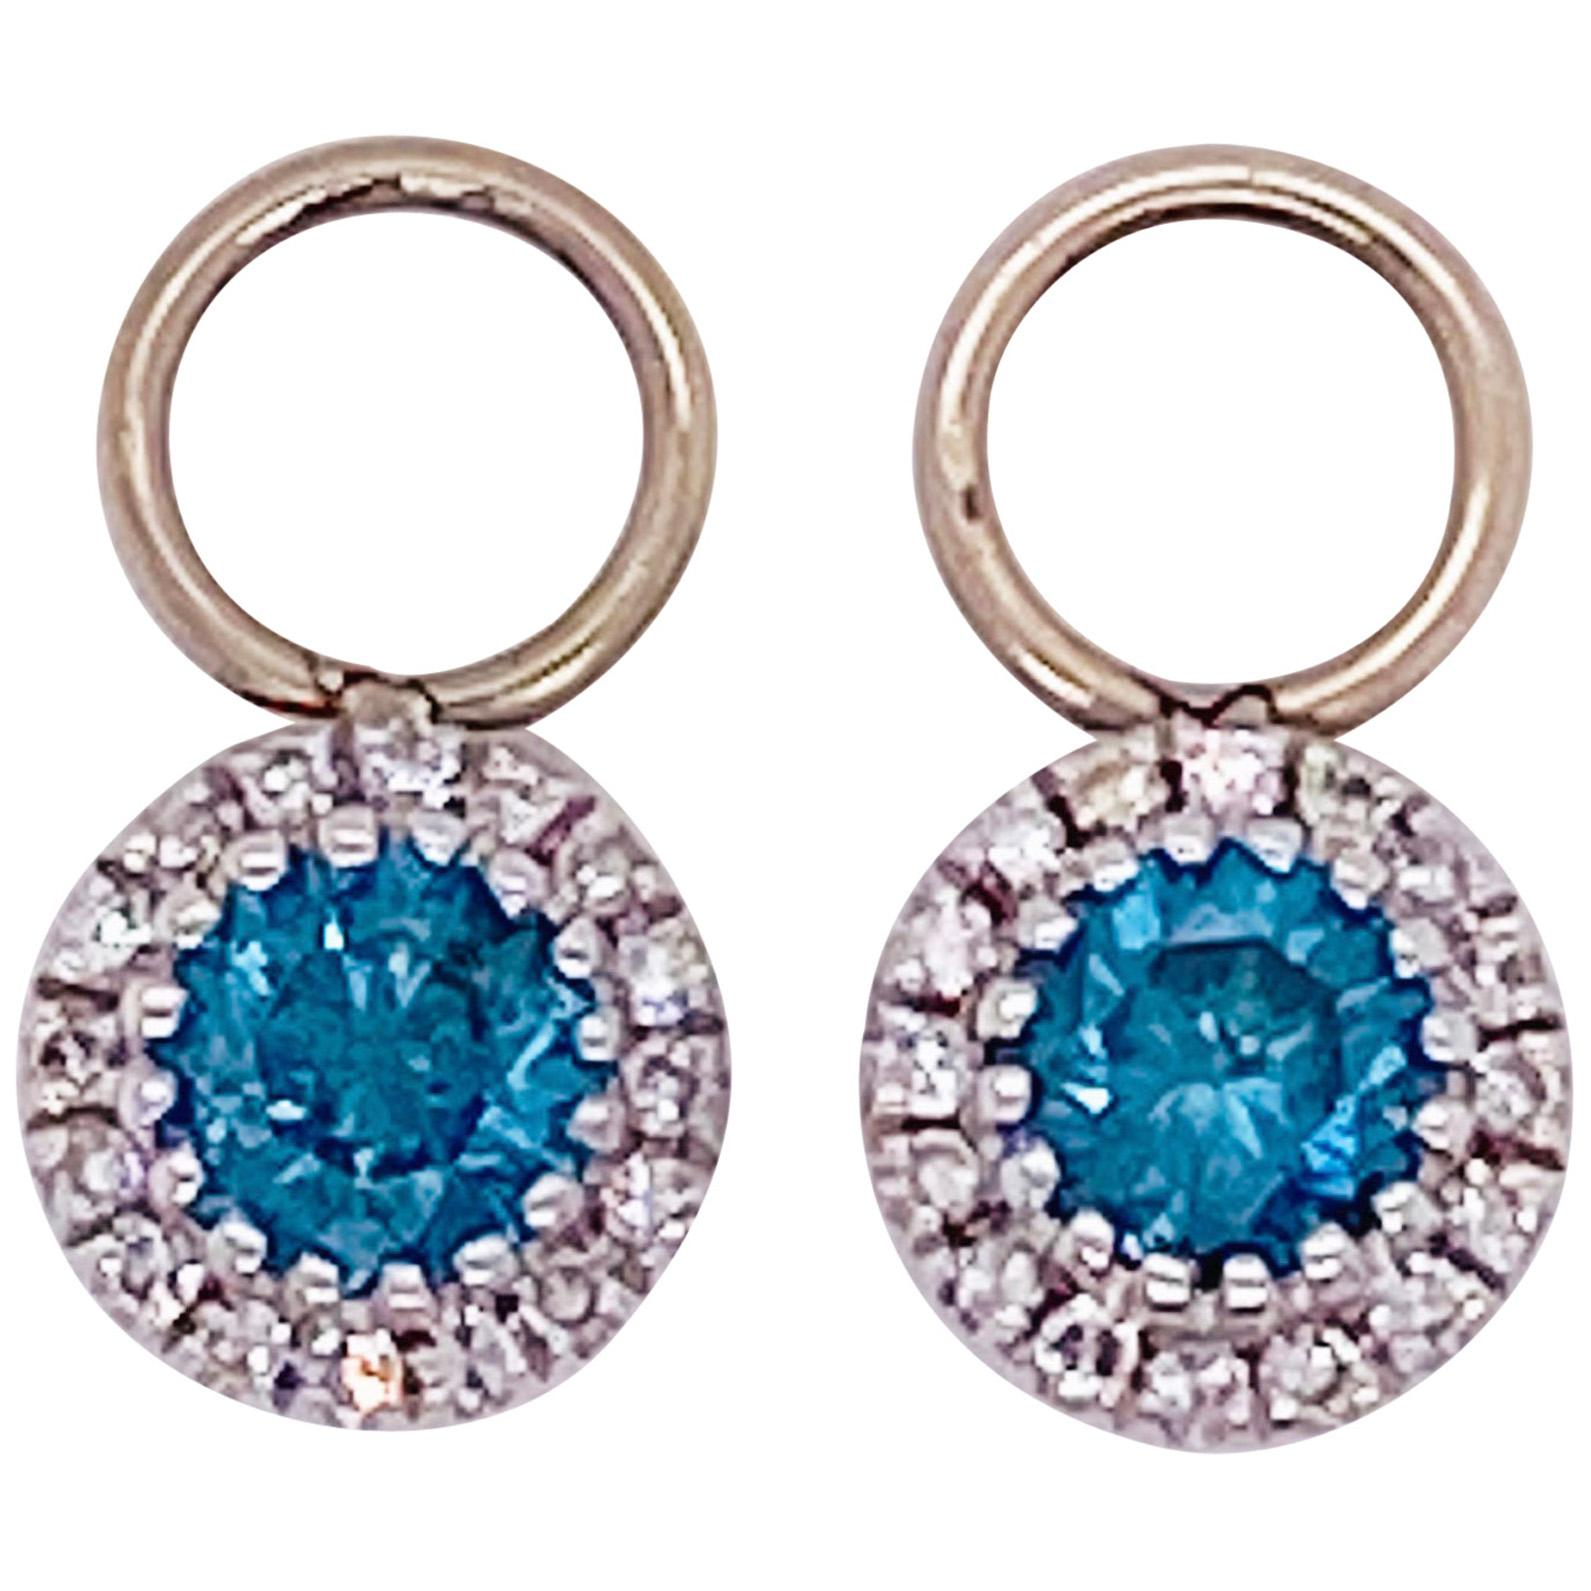 Topaz Diamond Earring Charms, Blue Topaz, 14 Karat Gold, Hoop Charm, .79 Carat